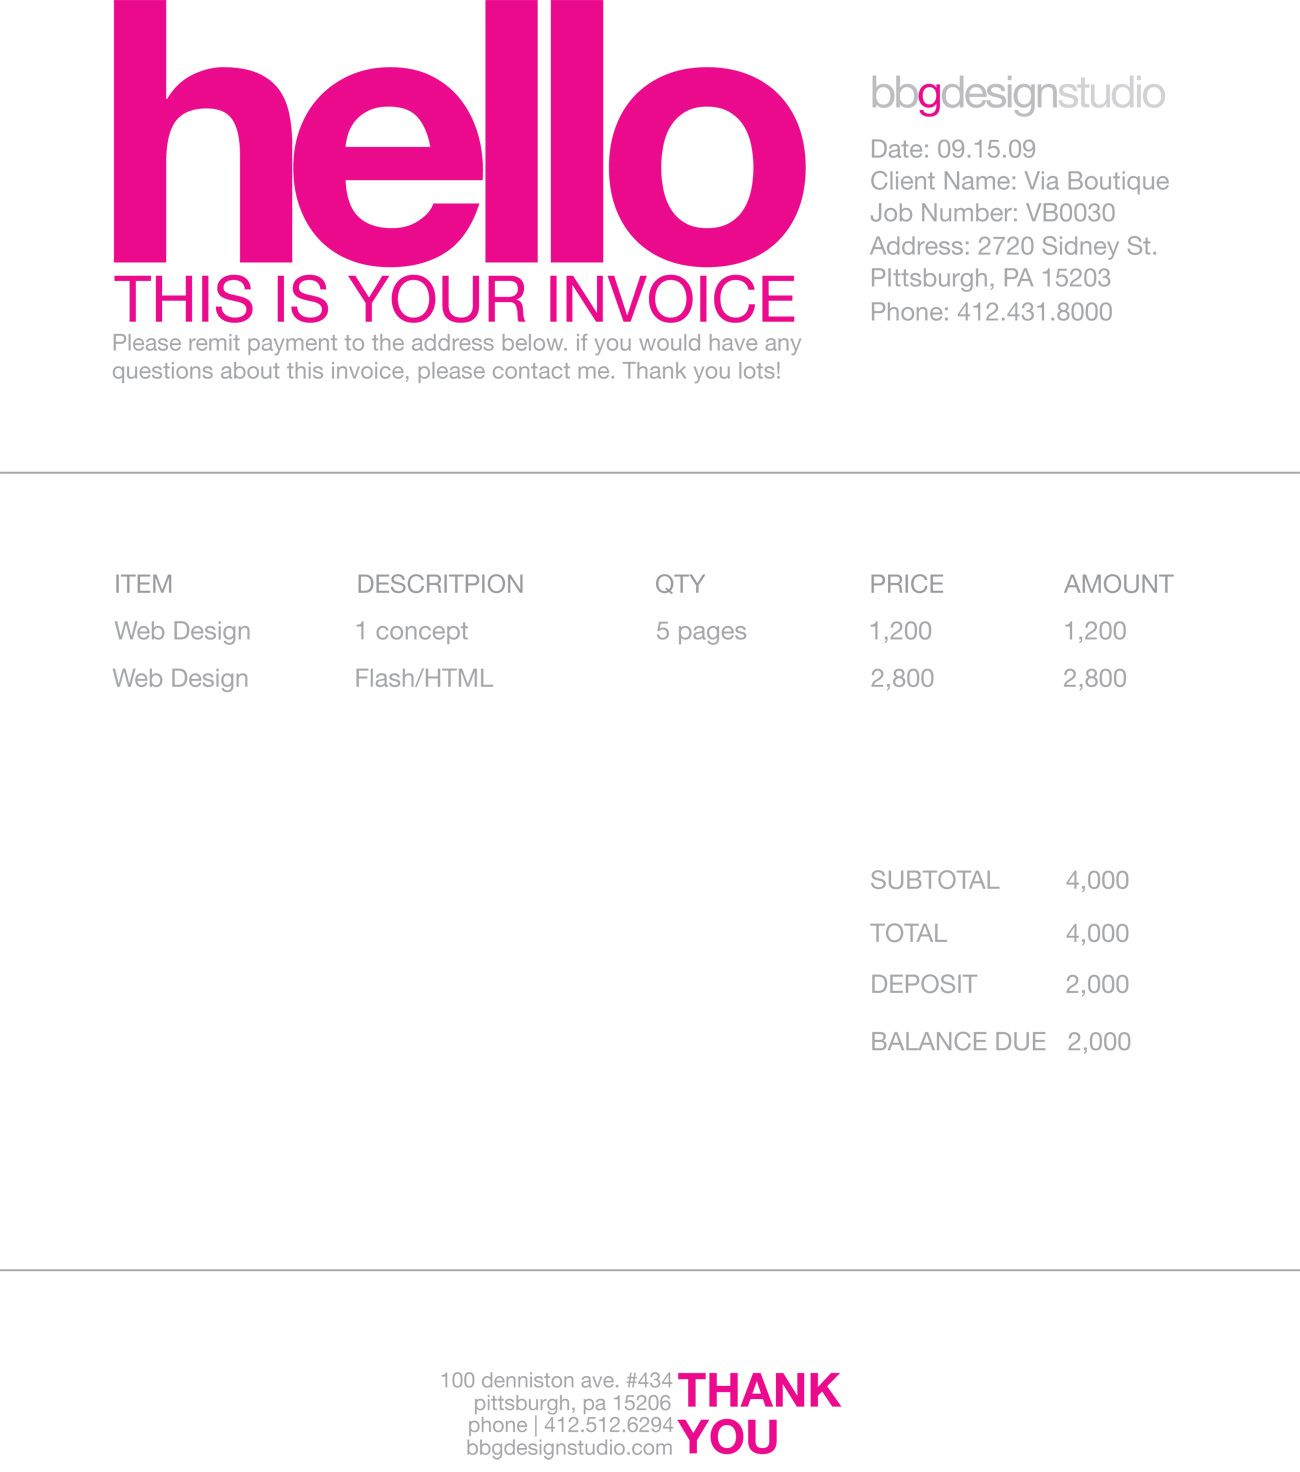 Soulfulpowerus  Unique  Images About Invoice Design On Pinterest With Interesting Receipt Software For Small Business Free Besides Rent Deposit Receipt Furthermore Acknowledge Receipt Of This Email With Nice Us Visa Receipt For Payment Also Contractor Receipt In Addition Return At Sephora Without Receipt And Registration Receipt As Well As Sunglass Hut Exchange No Receipt Additionally Print Amazon Receipt From Pinterestcom With Soulfulpowerus  Interesting  Images About Invoice Design On Pinterest With Nice Receipt Software For Small Business Free Besides Rent Deposit Receipt Furthermore Acknowledge Receipt Of This Email And Unique Us Visa Receipt For Payment Also Contractor Receipt In Addition Return At Sephora Without Receipt From Pinterestcom